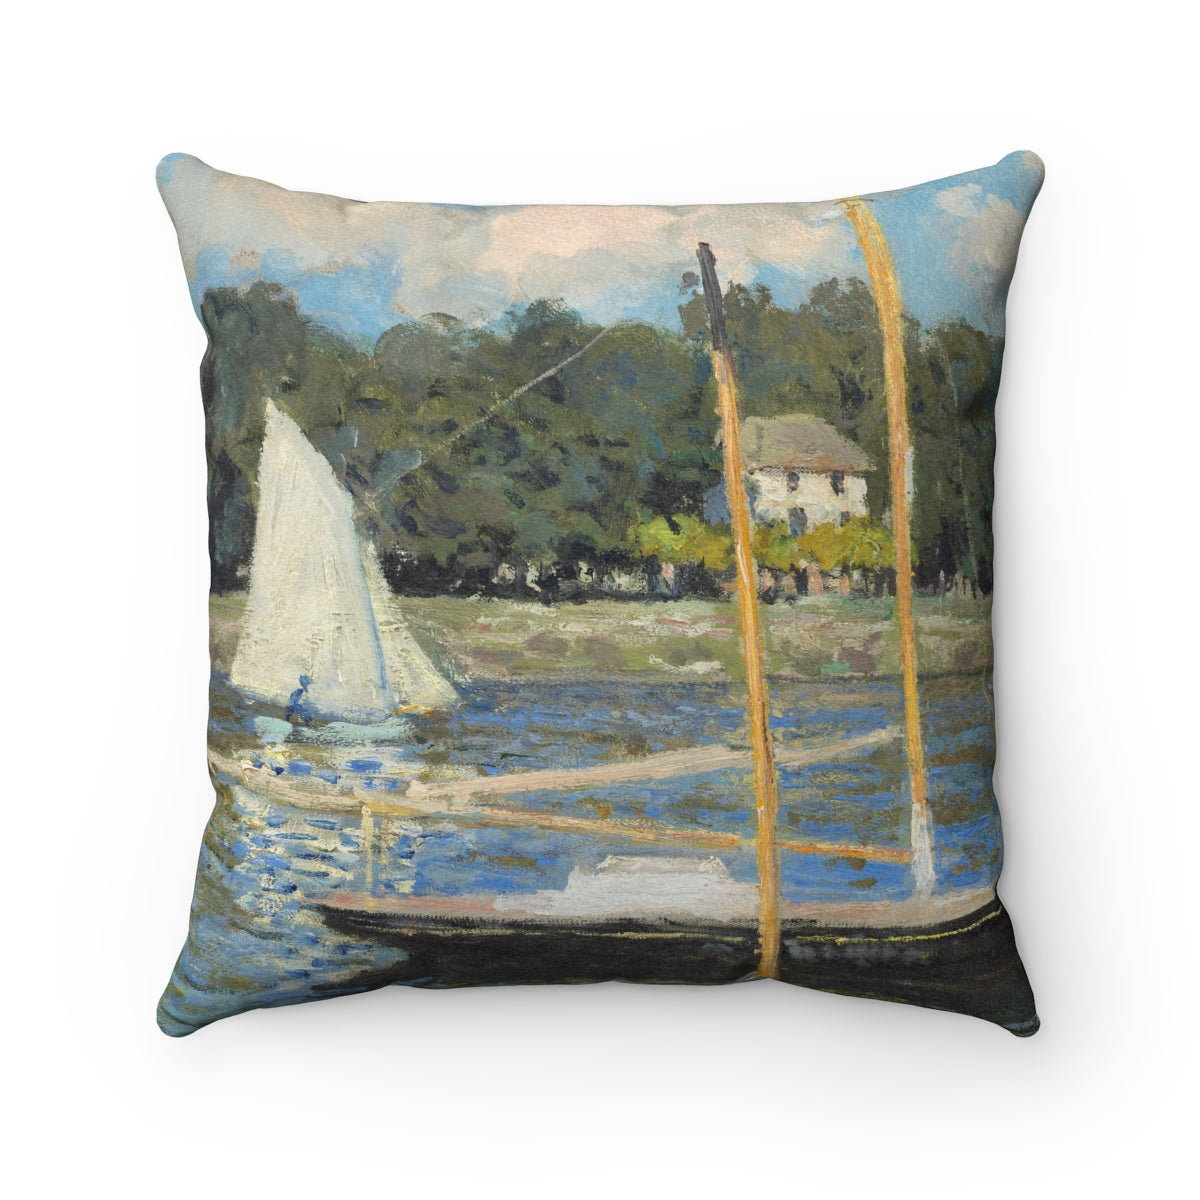 Faux Suede Square Pillow With Claude Monet Artwork